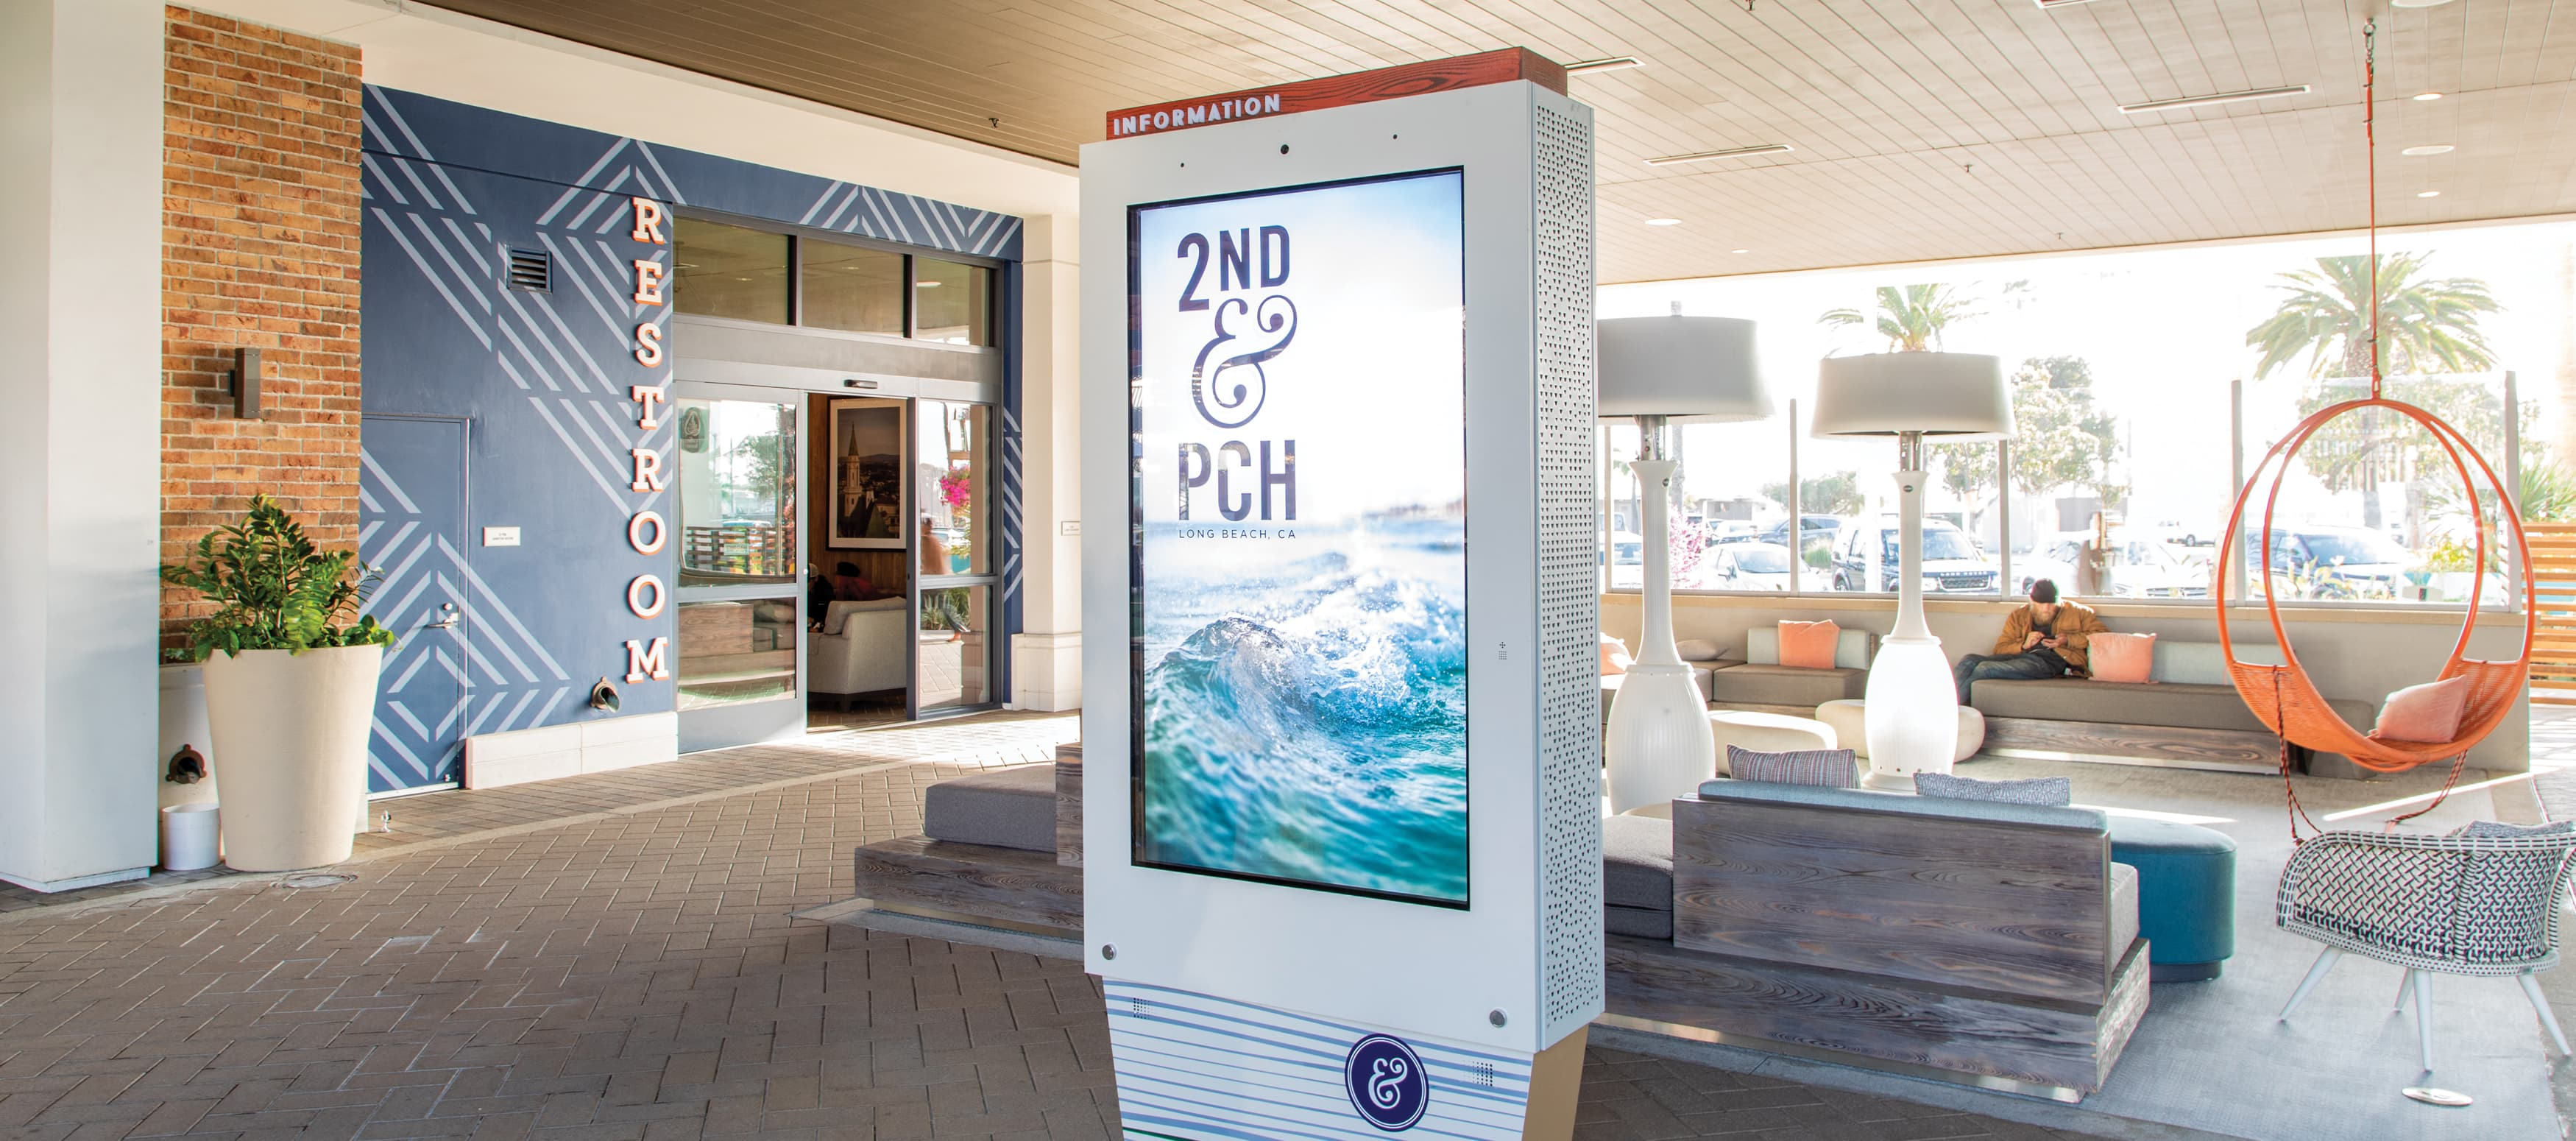 digital directory sign at an outdoor retail mall